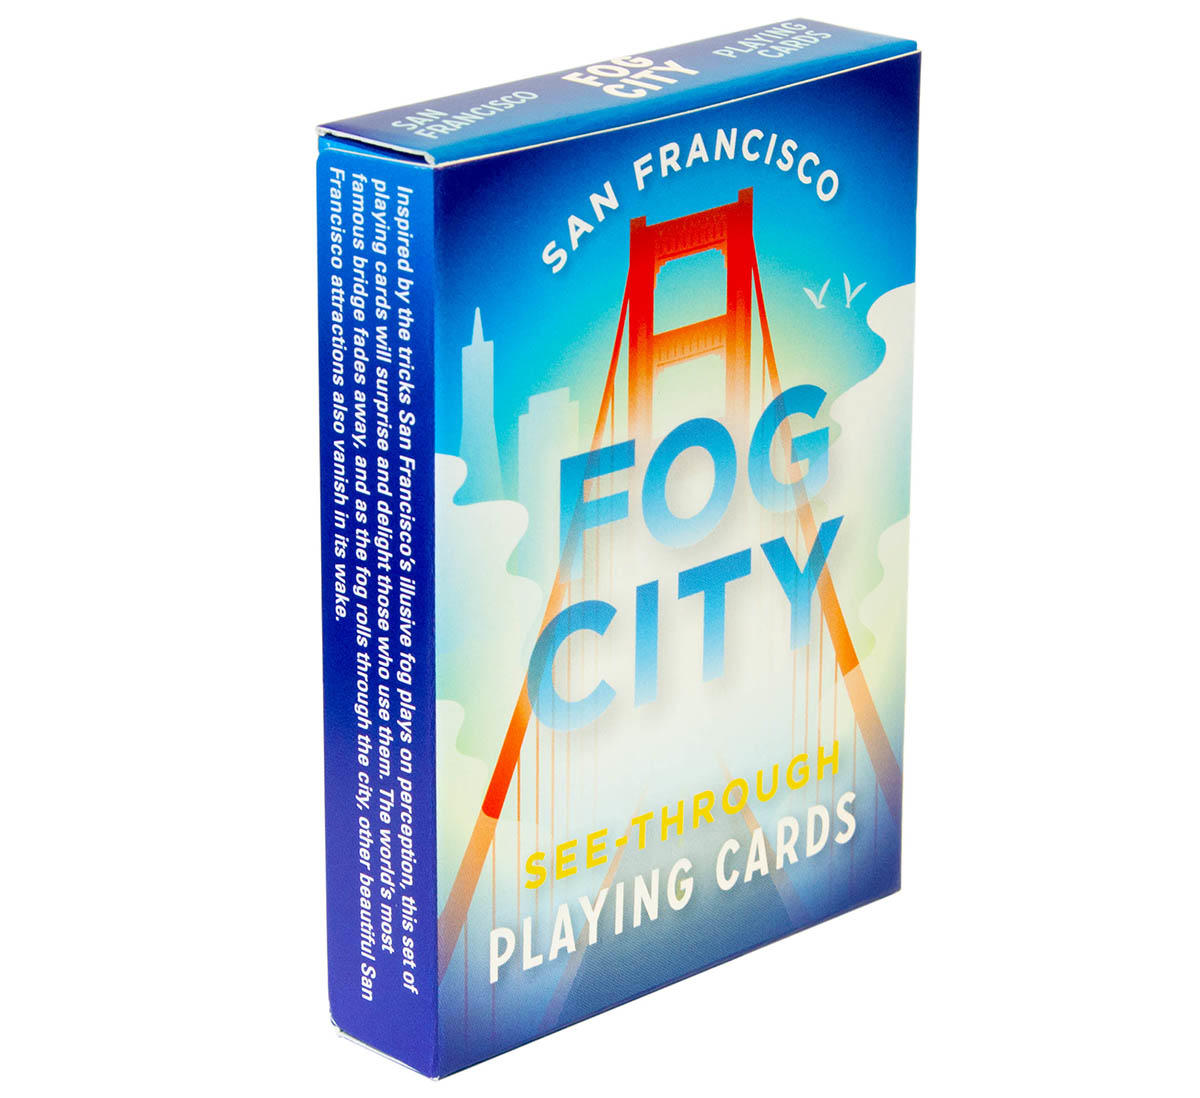 San Francisco 'Fog City' see-through playing cards.